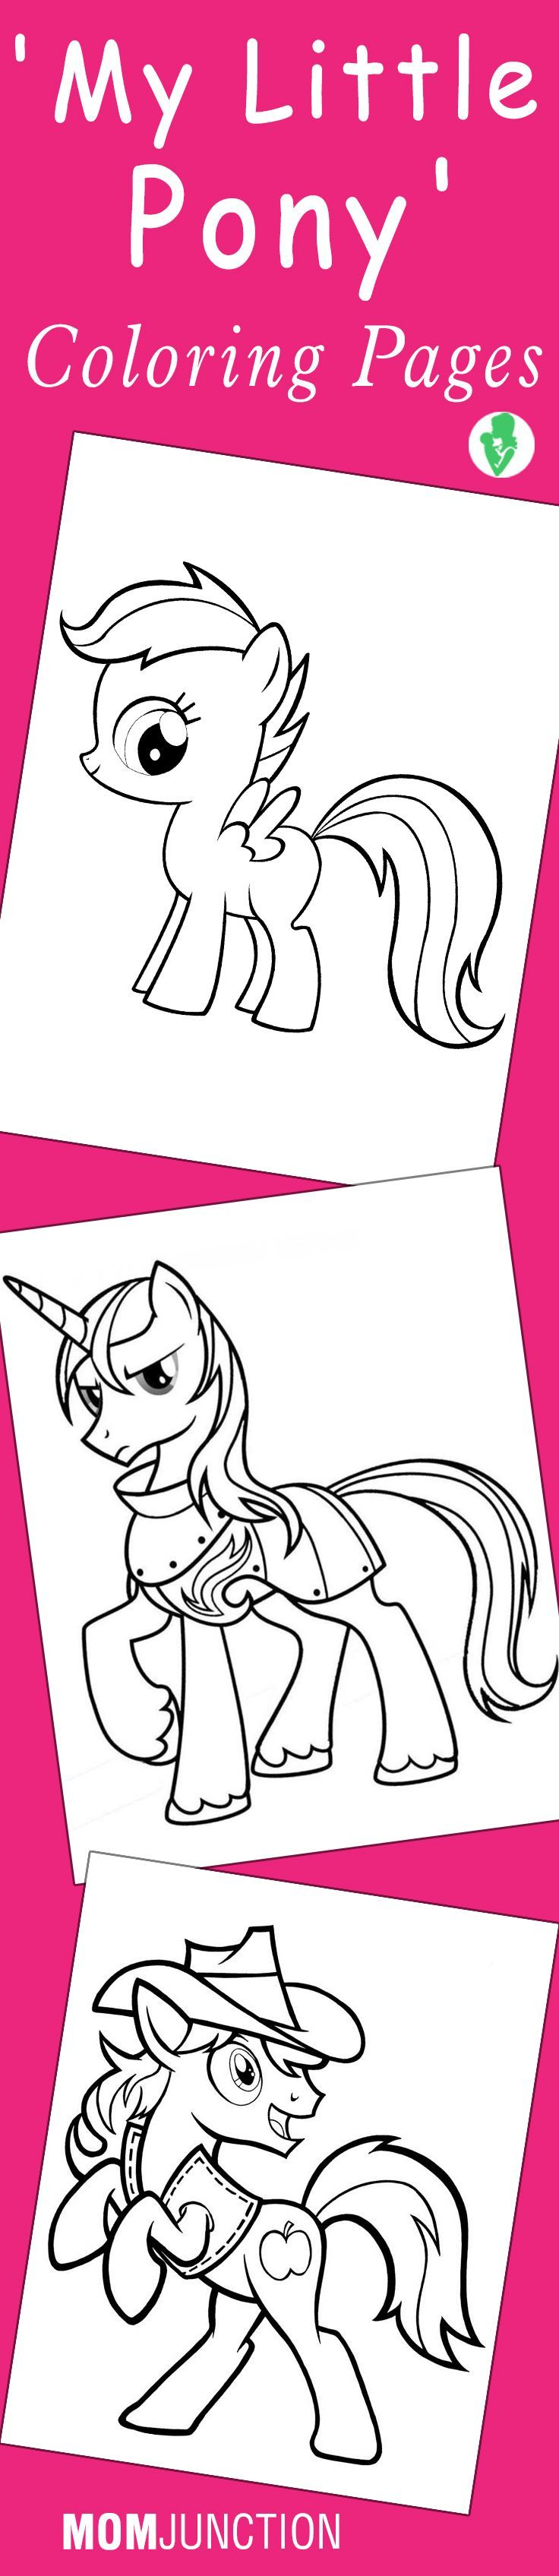 top 55 u0027my little pony u0027 coloring pages your toddler will love to